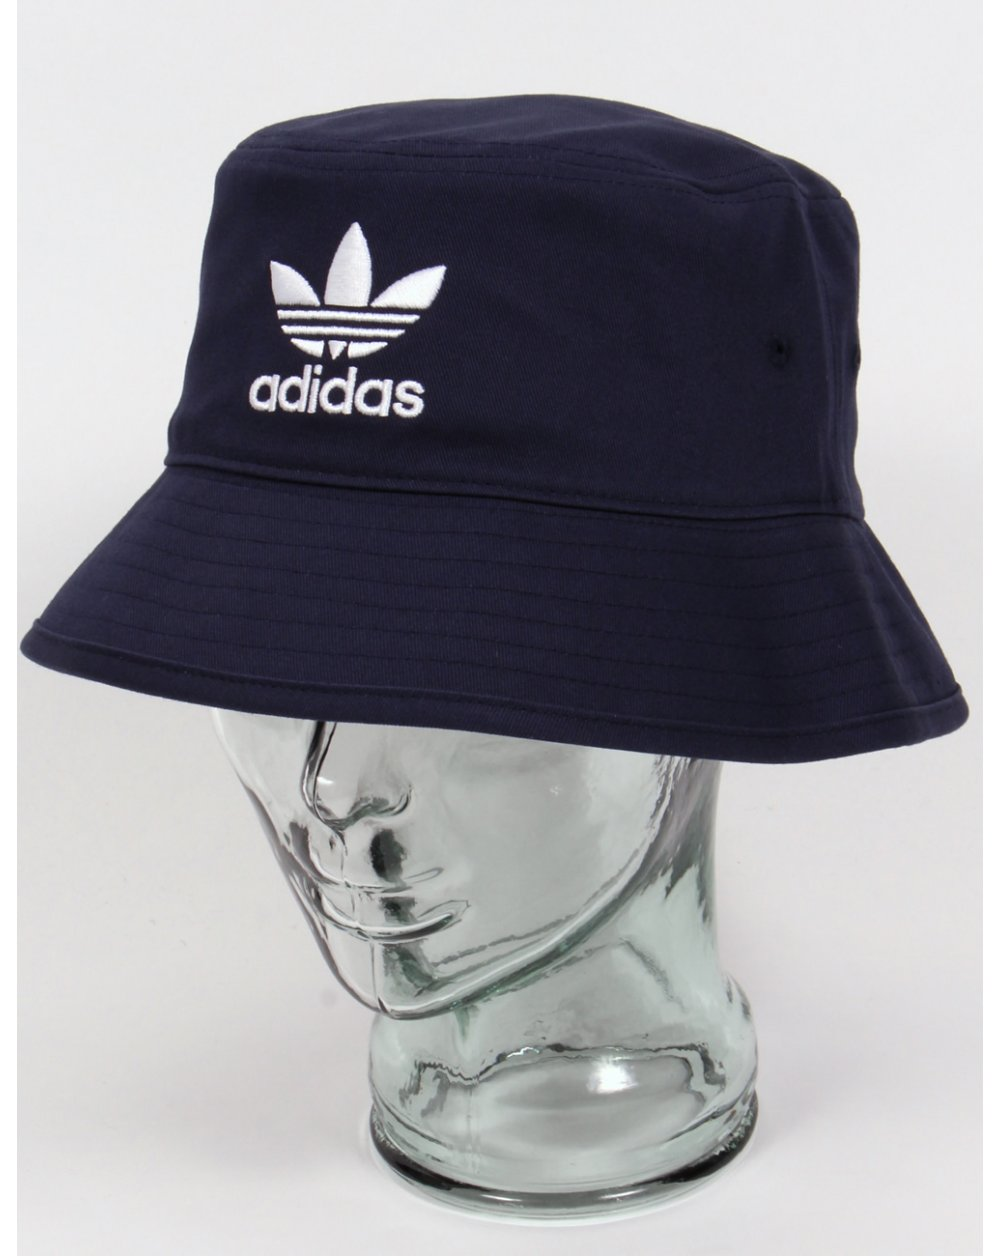 adidas Originals Adidas Originals Bucket Hat With Trefoil Navy 7fd9b21d801